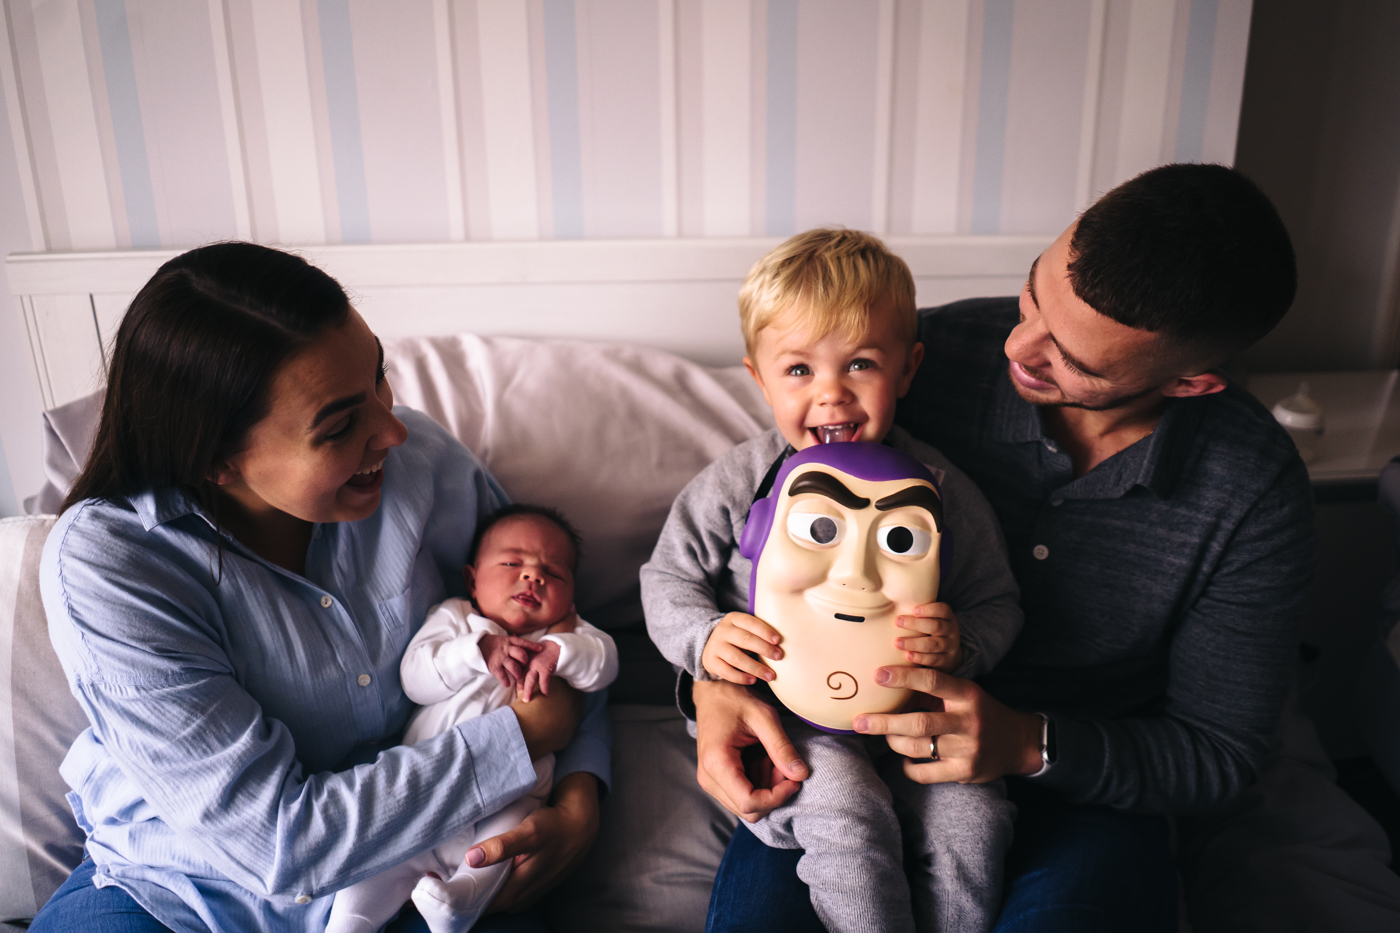 family-newborn-maternity-shoot-photography-at-home-teesside-middlesbrough-stockton-north-yorshire-photographer-0019.jpg